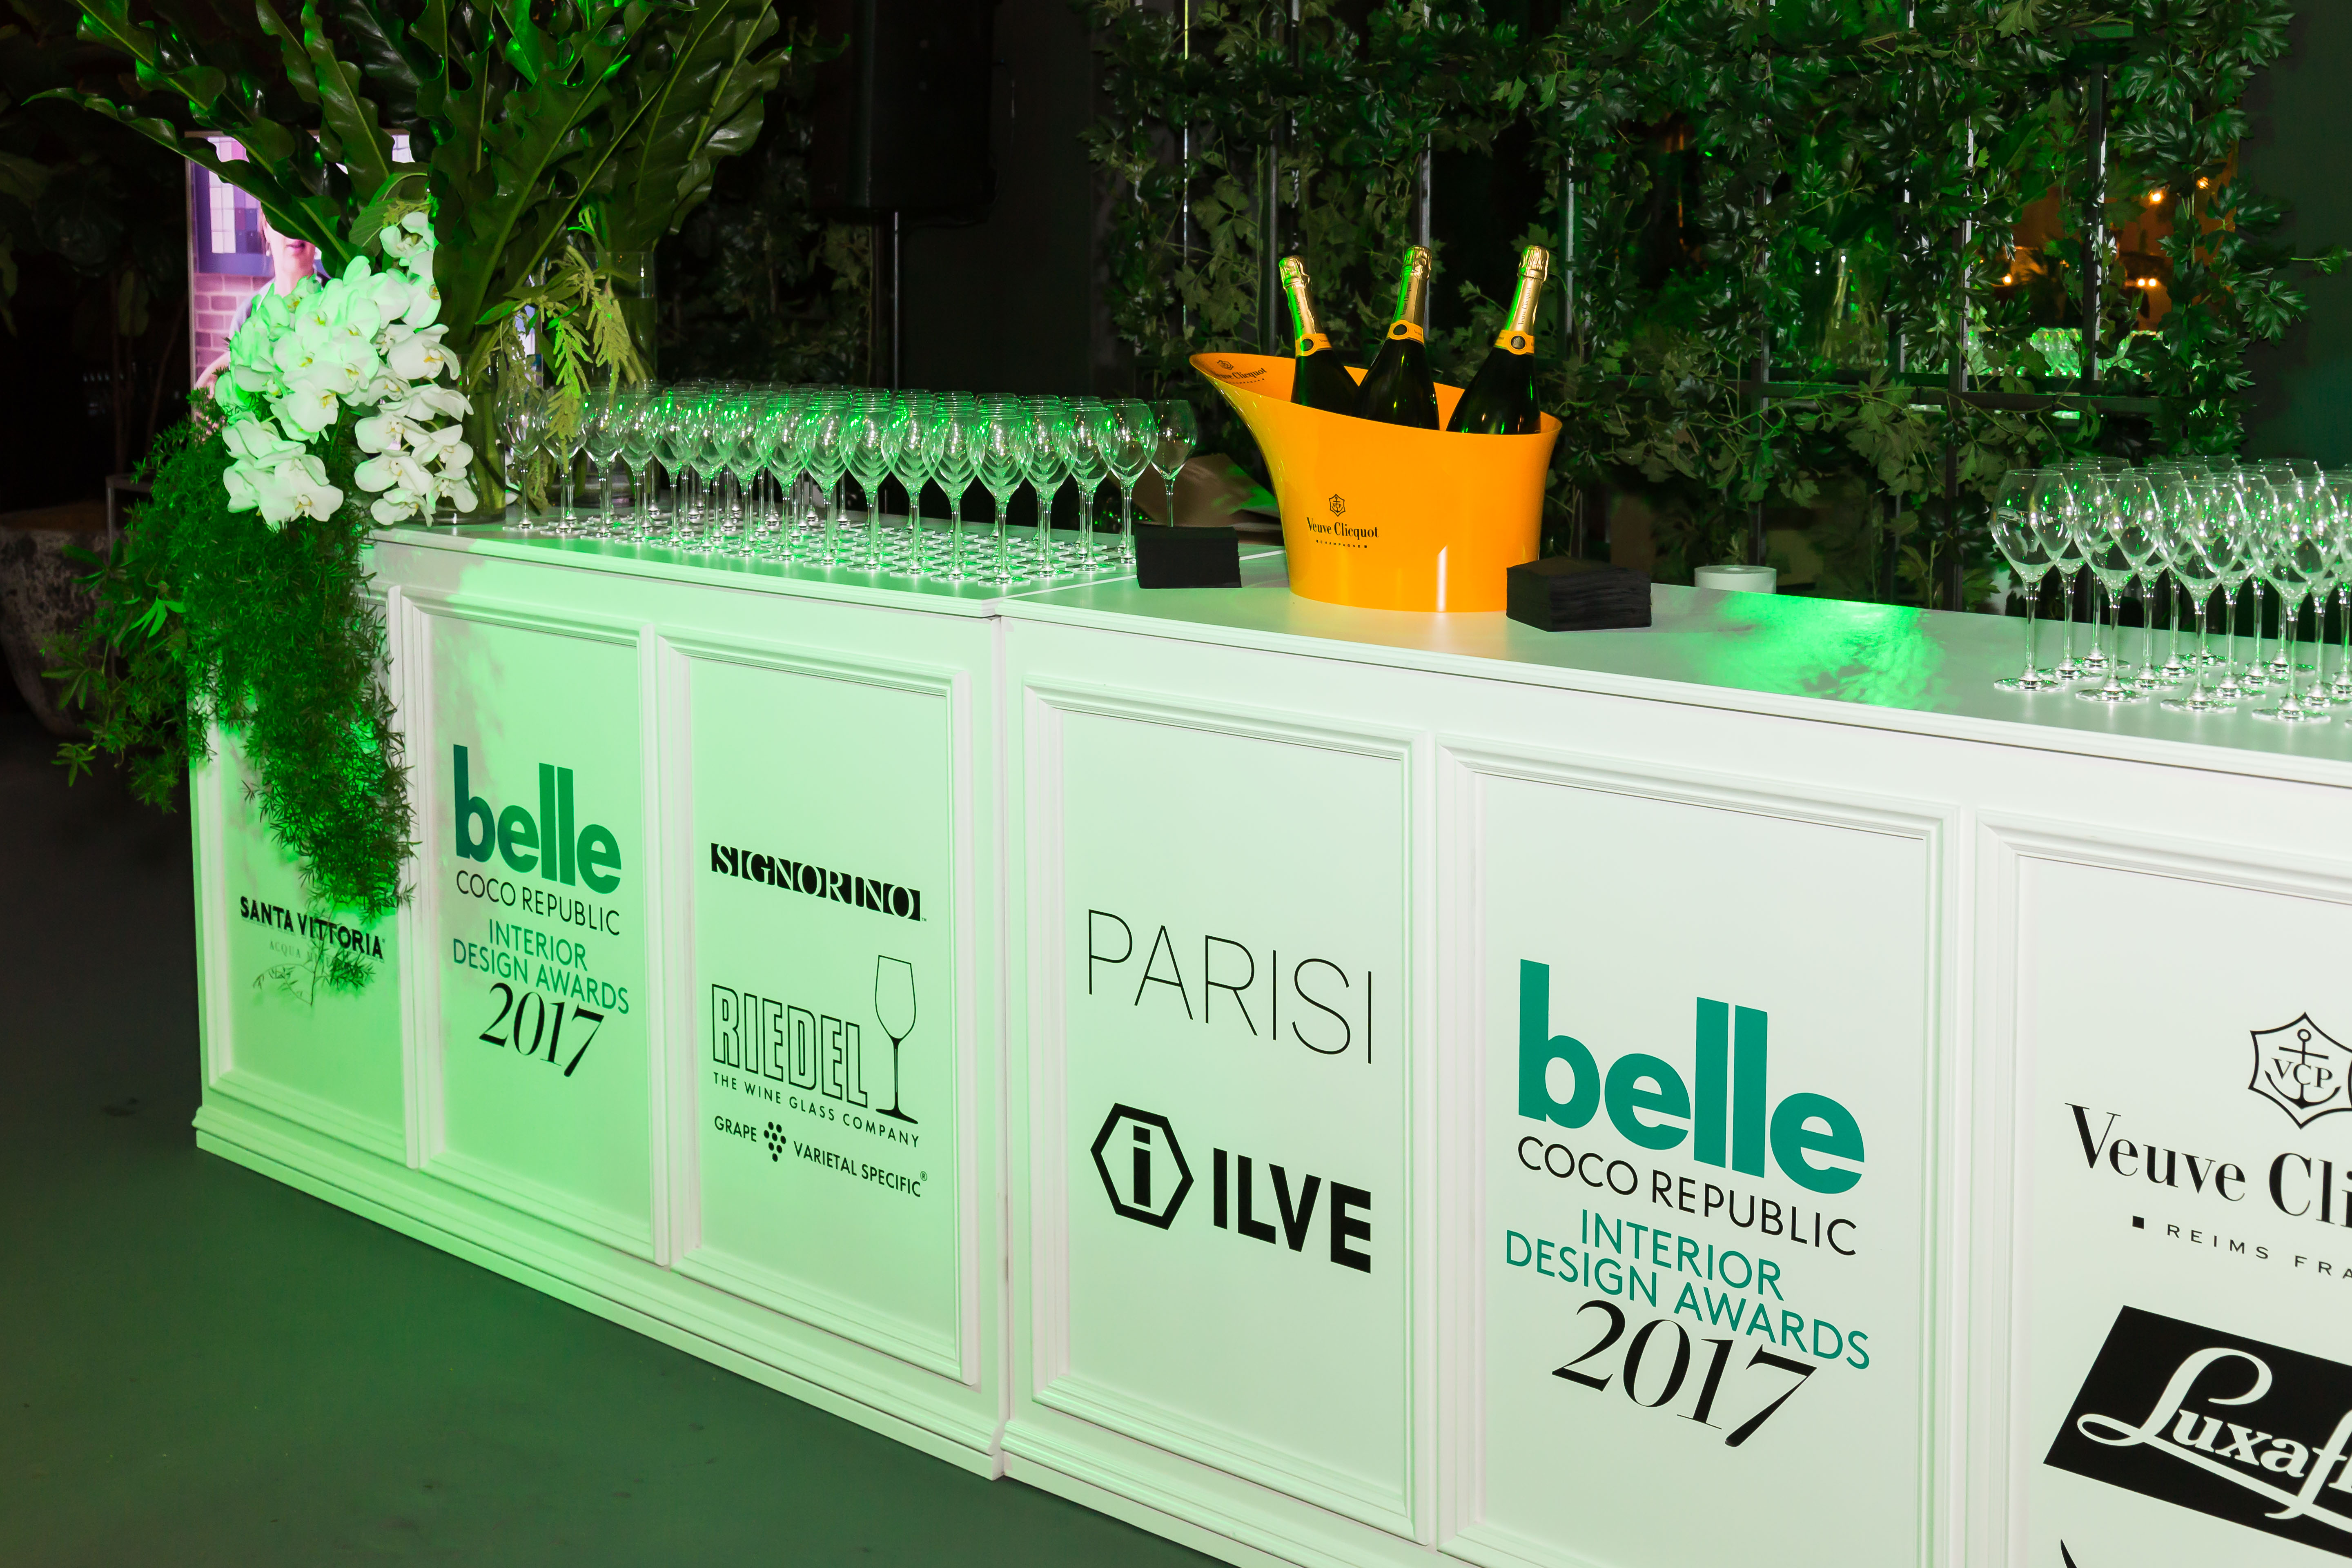 The Belle Coco Republic Interior Design Awards 2017 Is Countries Most Prestigious Program And Has Been Running For Last Seven